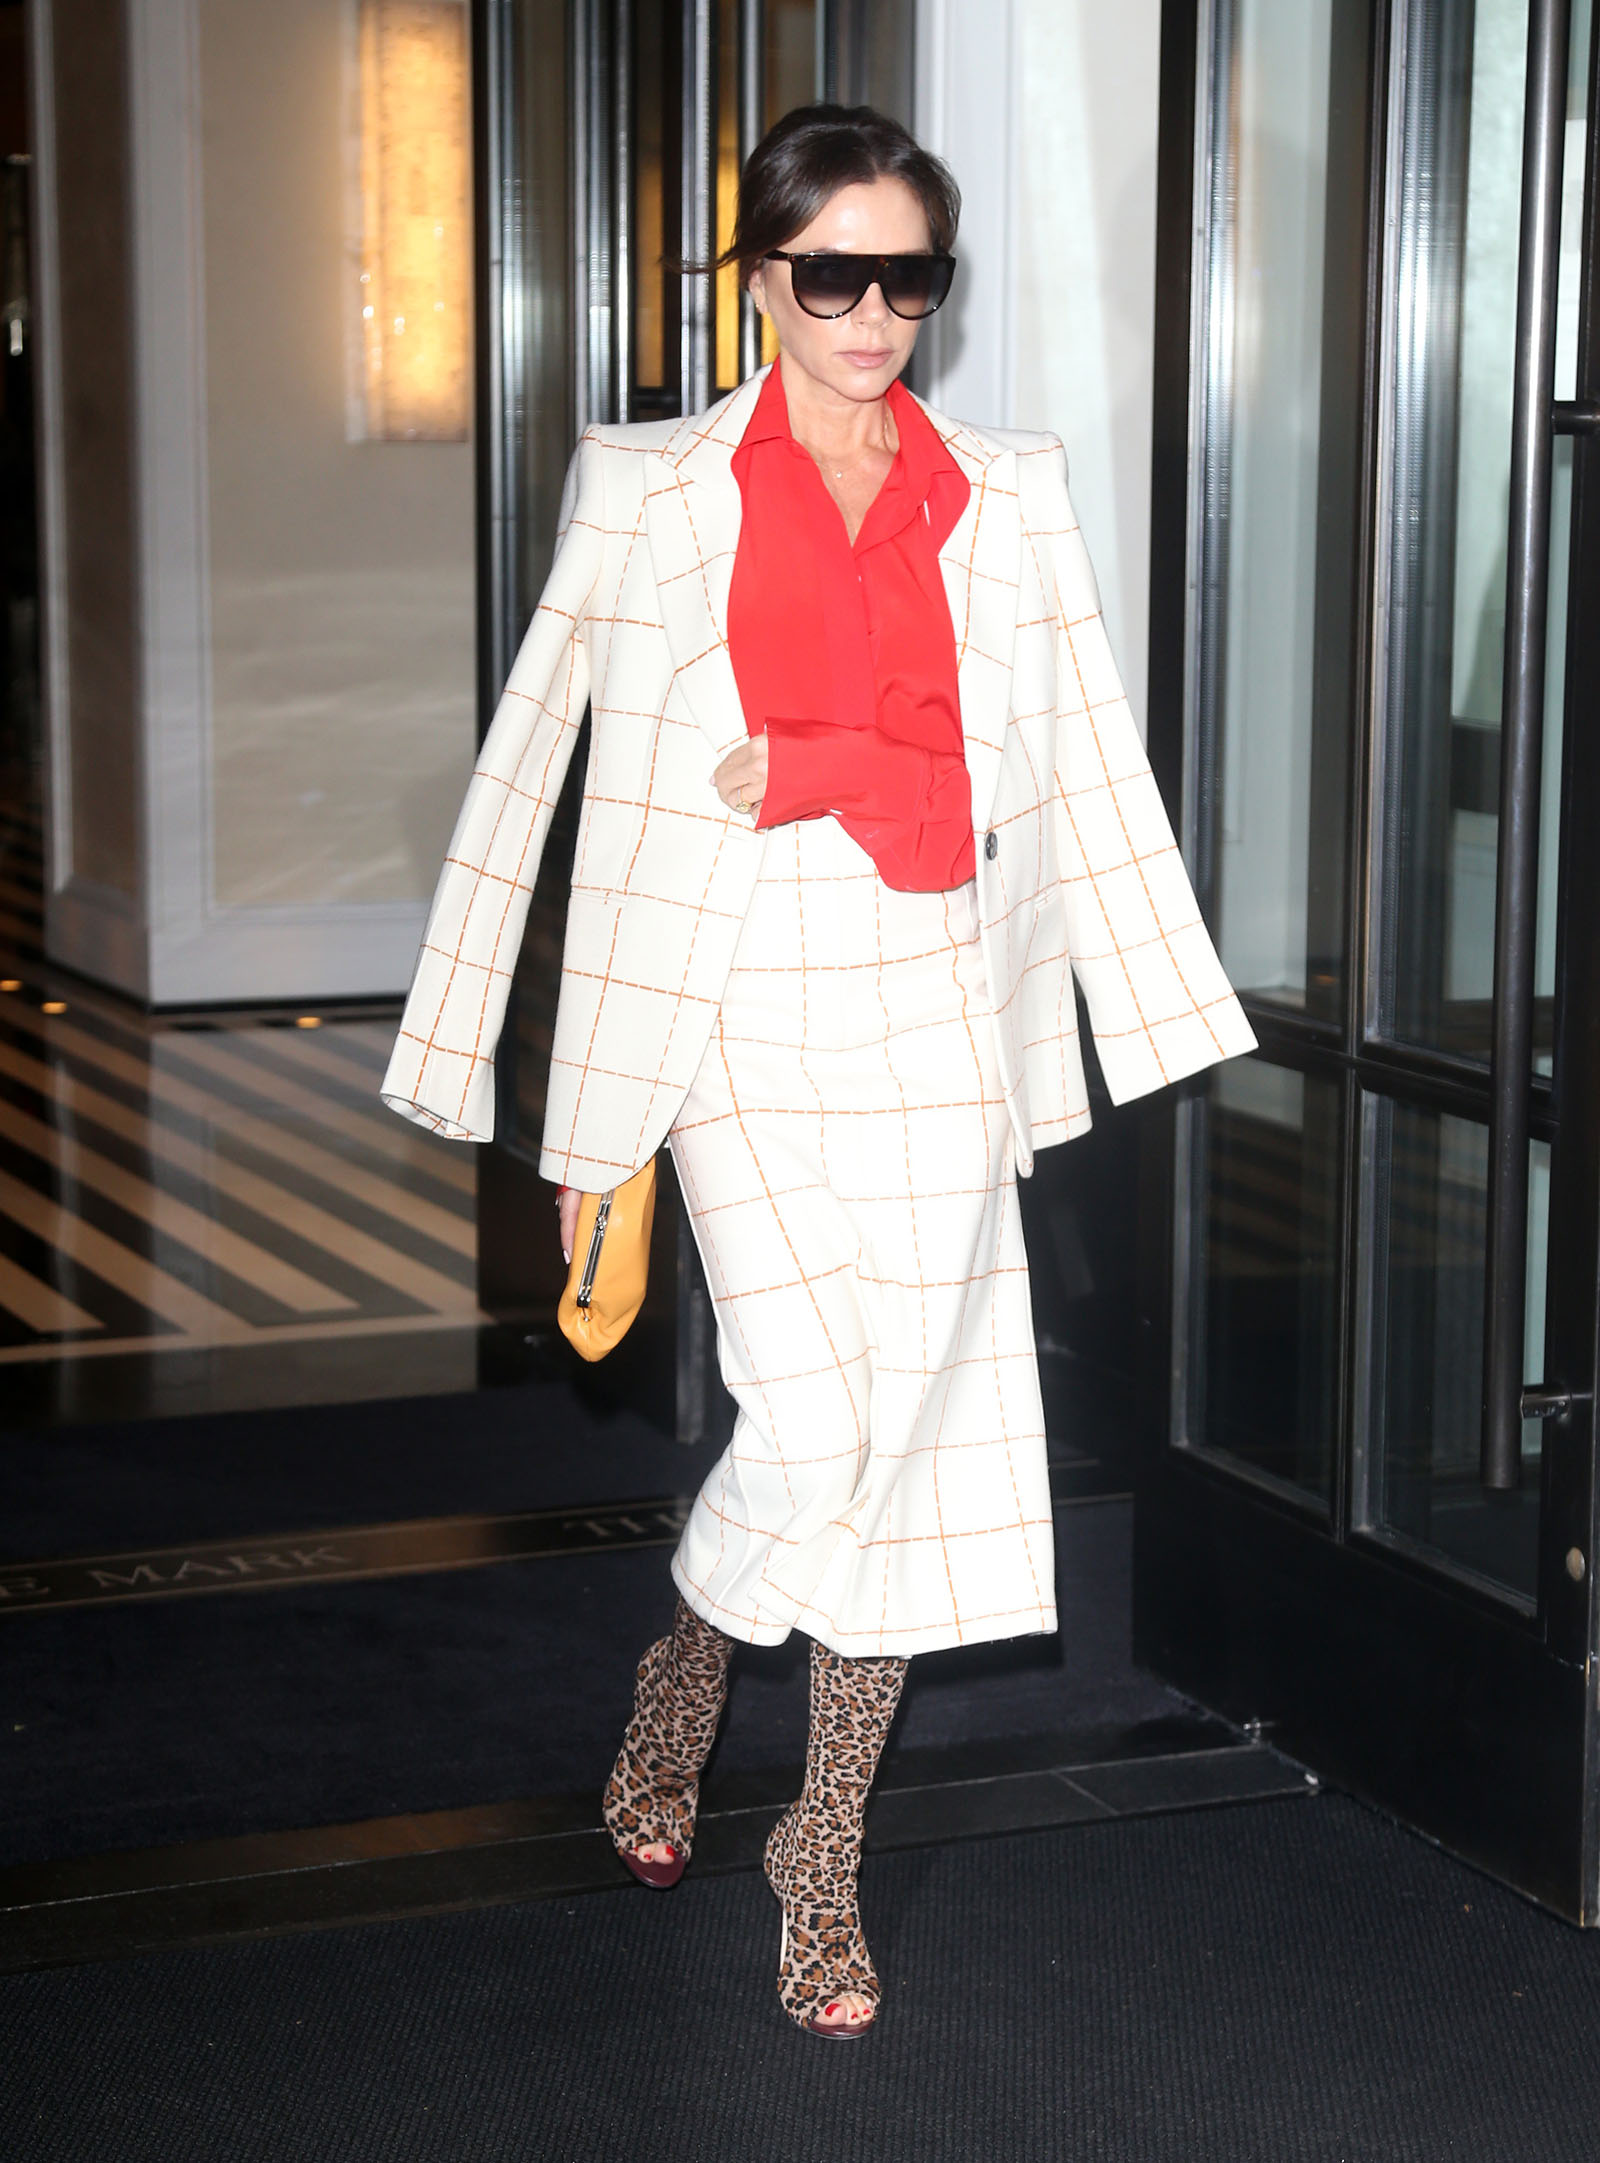 Victoria Beckham steps out in a fun and sophisticated skirt suit.